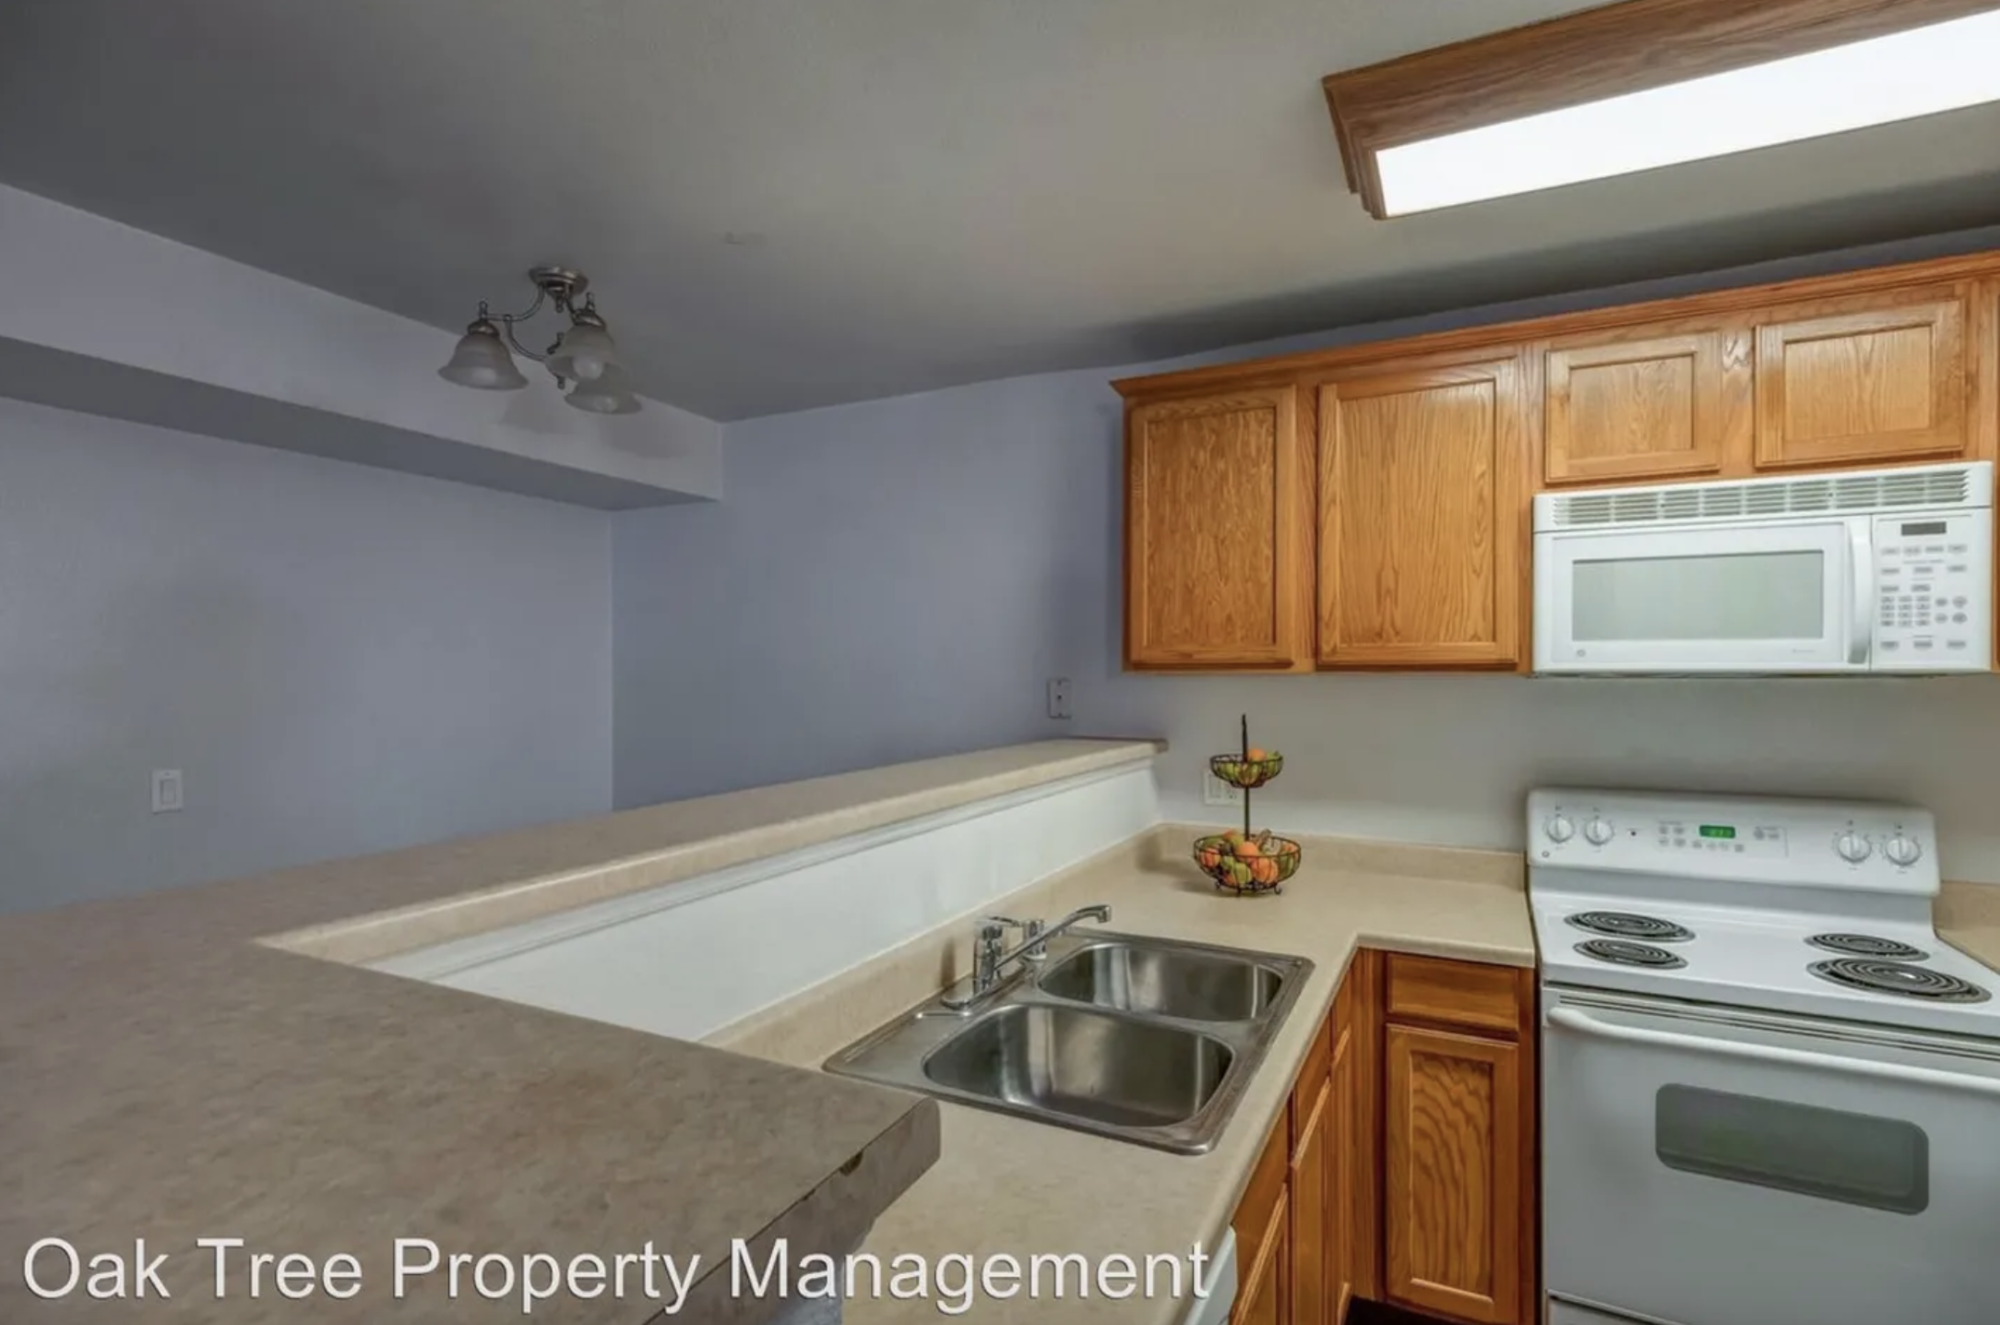 Apartments for rent in Fresno: What will $900 get you?